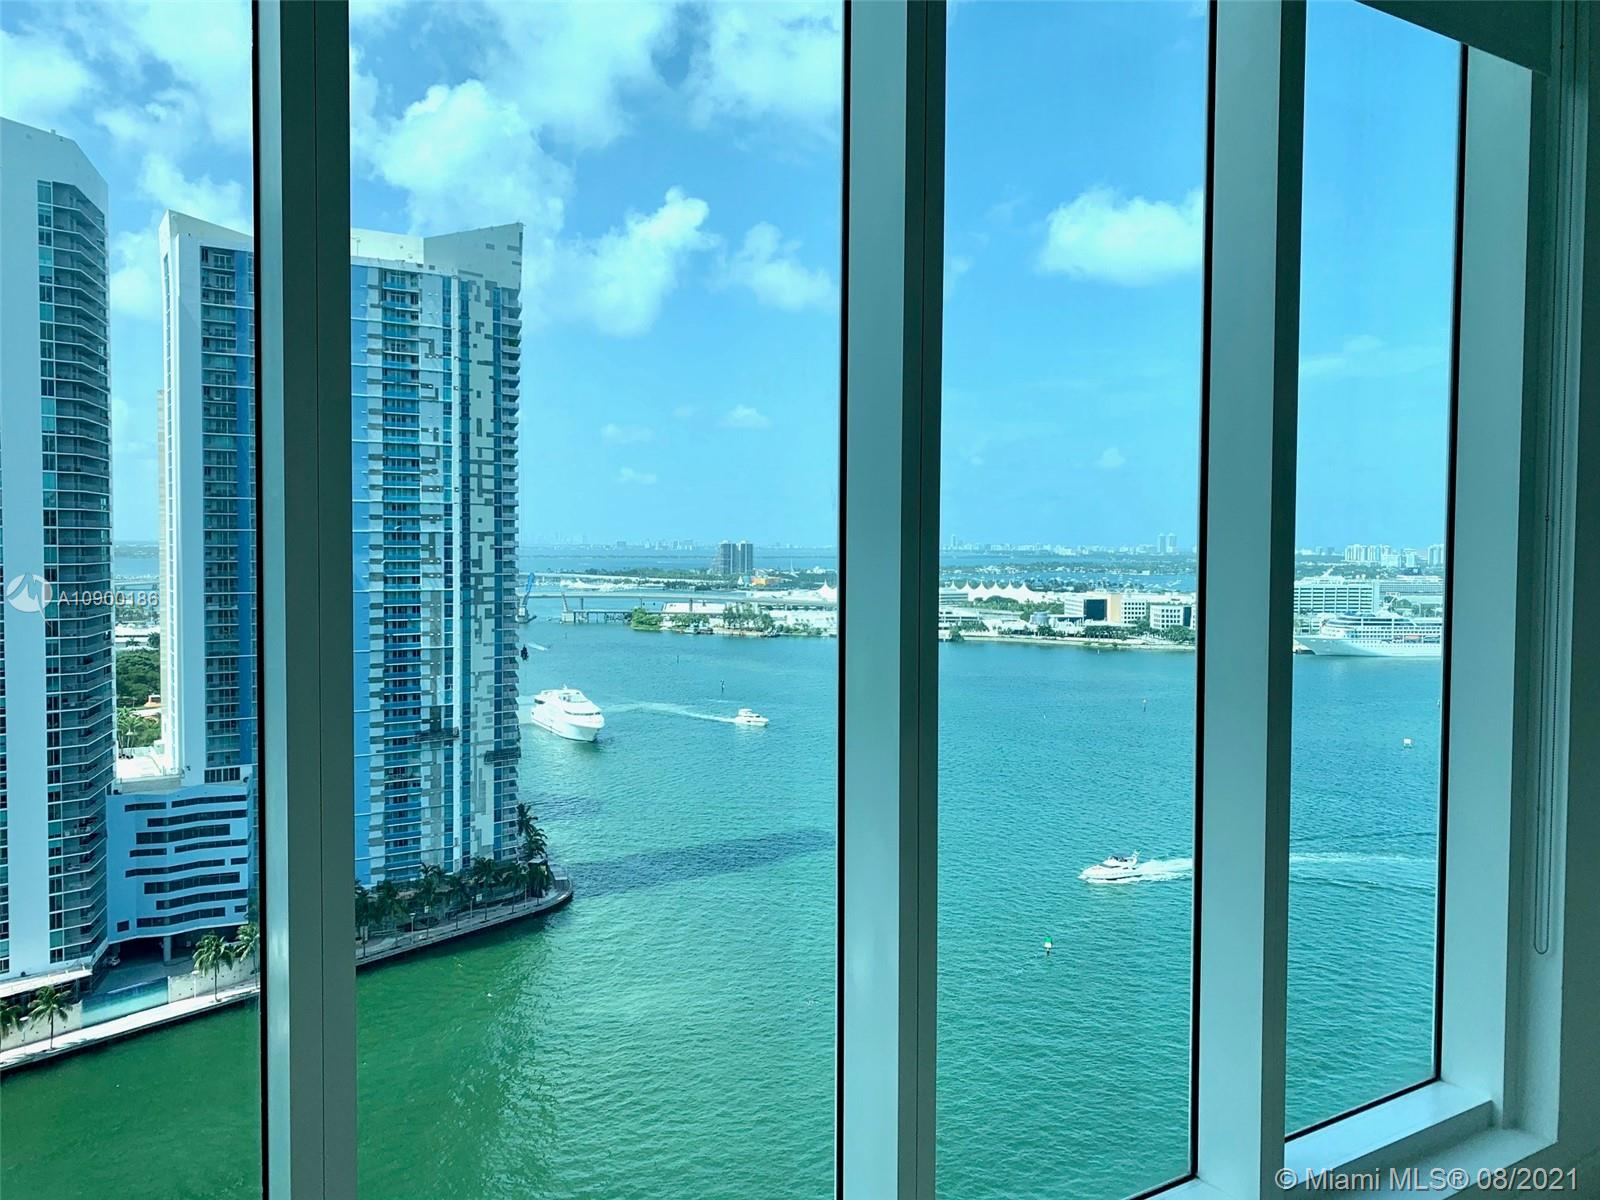 Spectacular 3 bedrooms 3.5 bathrooms flow-through unit with direct city and bay views. Asia is a luxury condominium in Brickell Key Island. The corner unit has a 180-degree breathtaking view of the ocean, Biscayne Bay and Miami Skyline. The unit is featuring private elevators, 12-foot ceiling, gourmet kitchen, wine cooler, built-in espresso machine, Miele ovens, subzero refrigerator.